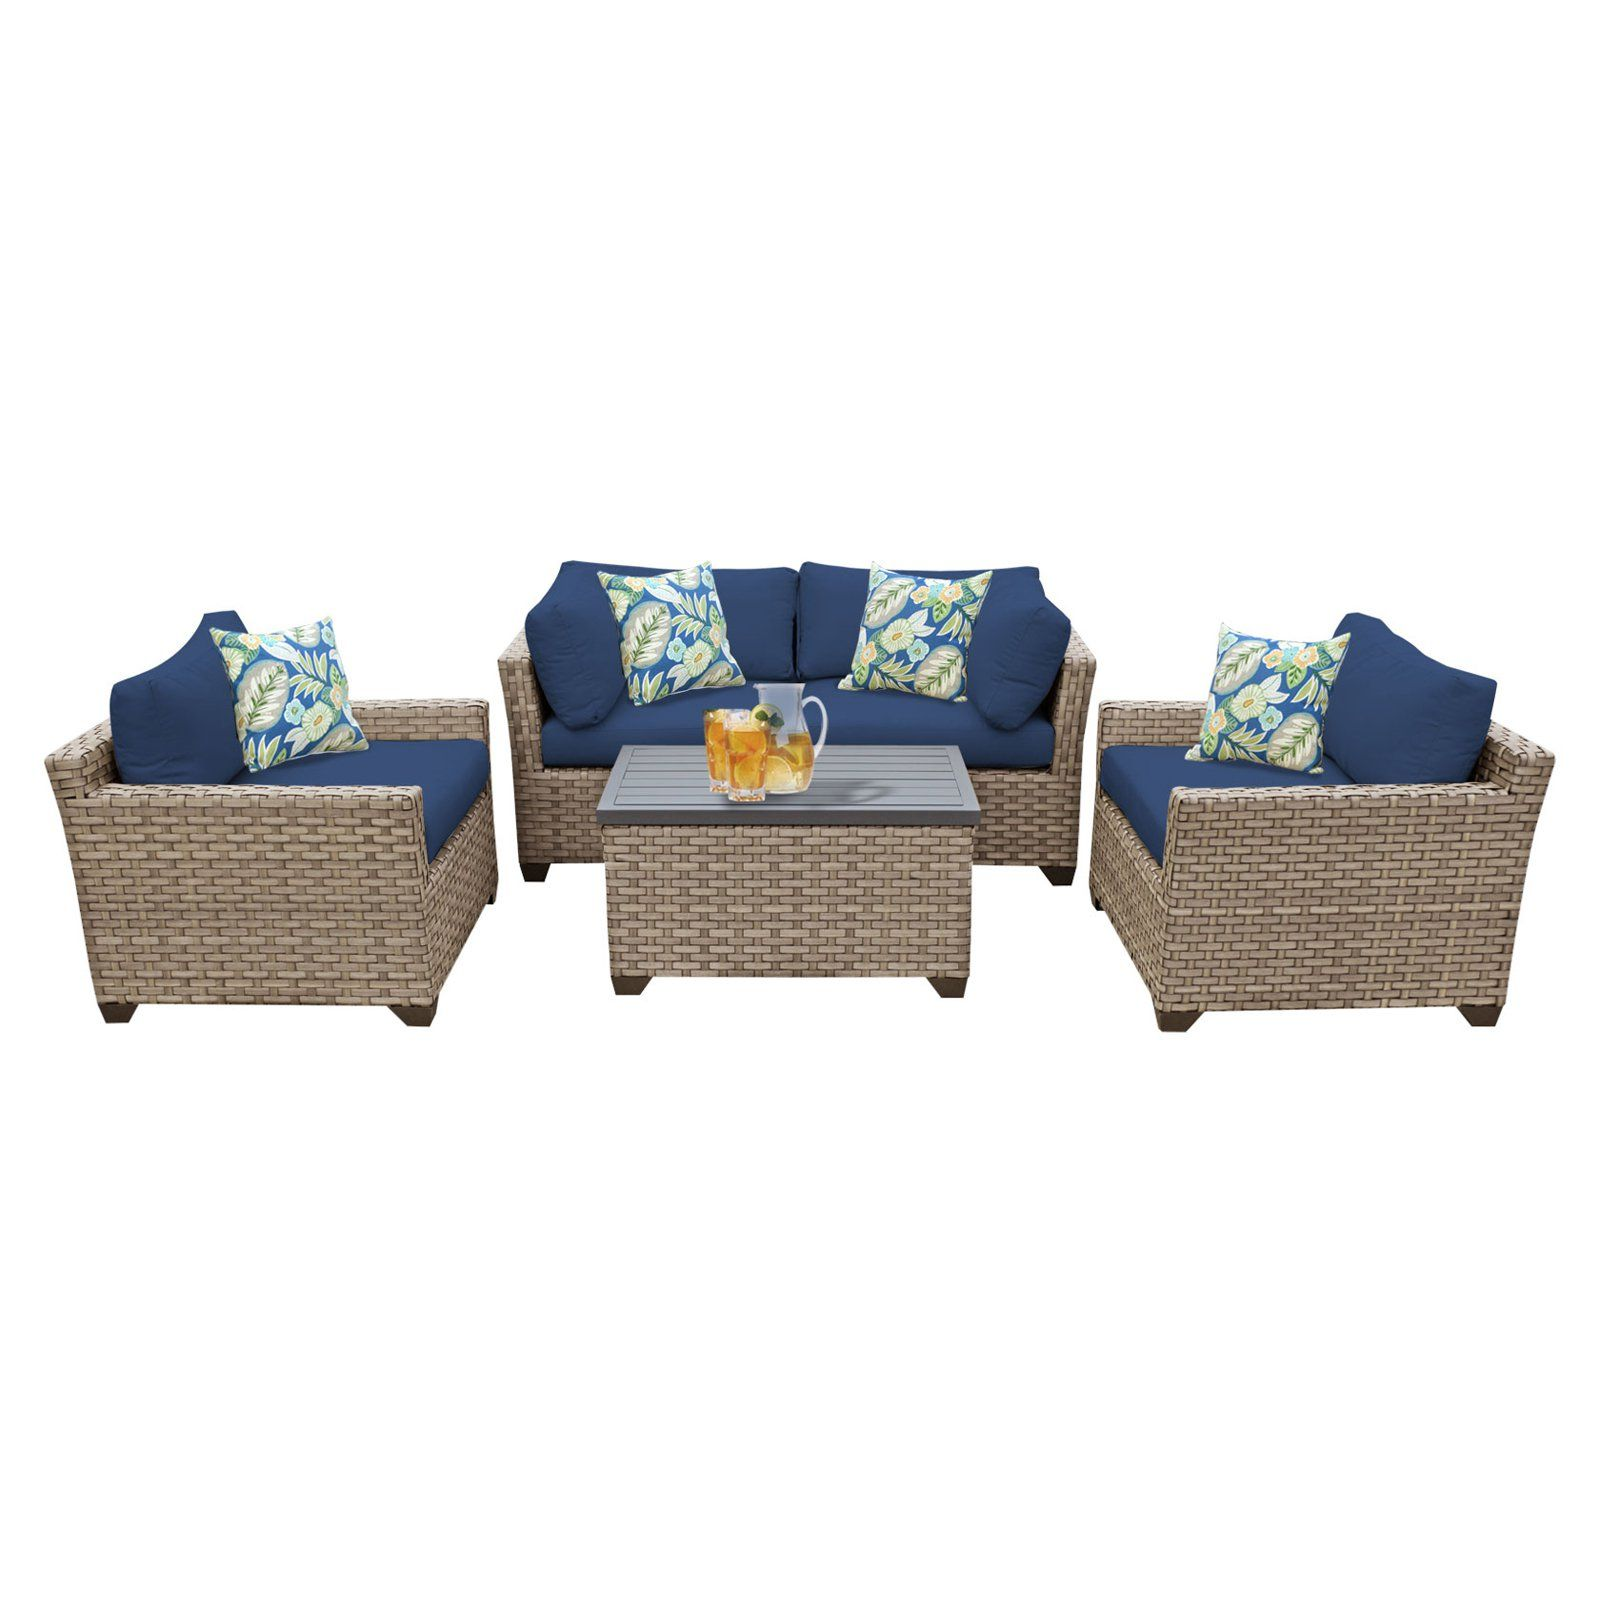 Outdoor Tk Clics Monterey Wicker 5 Piece Patio Conversation Set With Club Chair And 2 Sets Of Cushion Covers Navy Beige